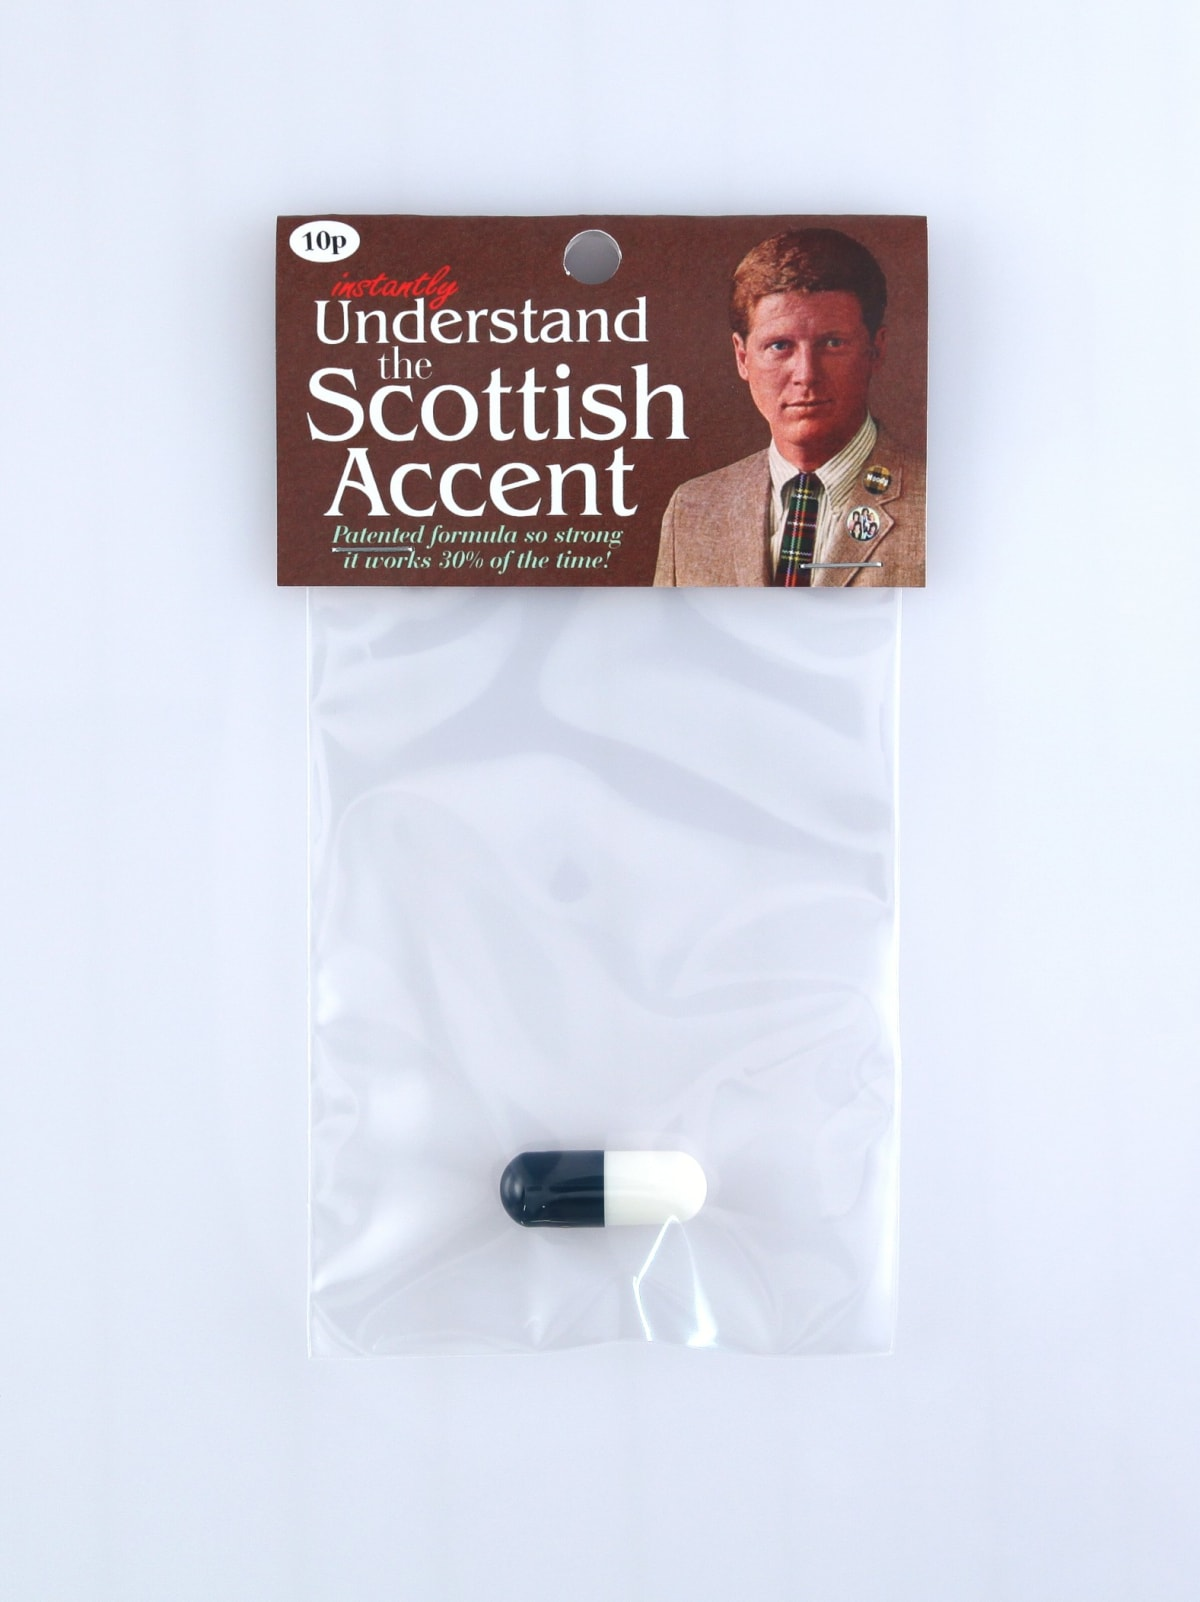 Understand the Scottish accent